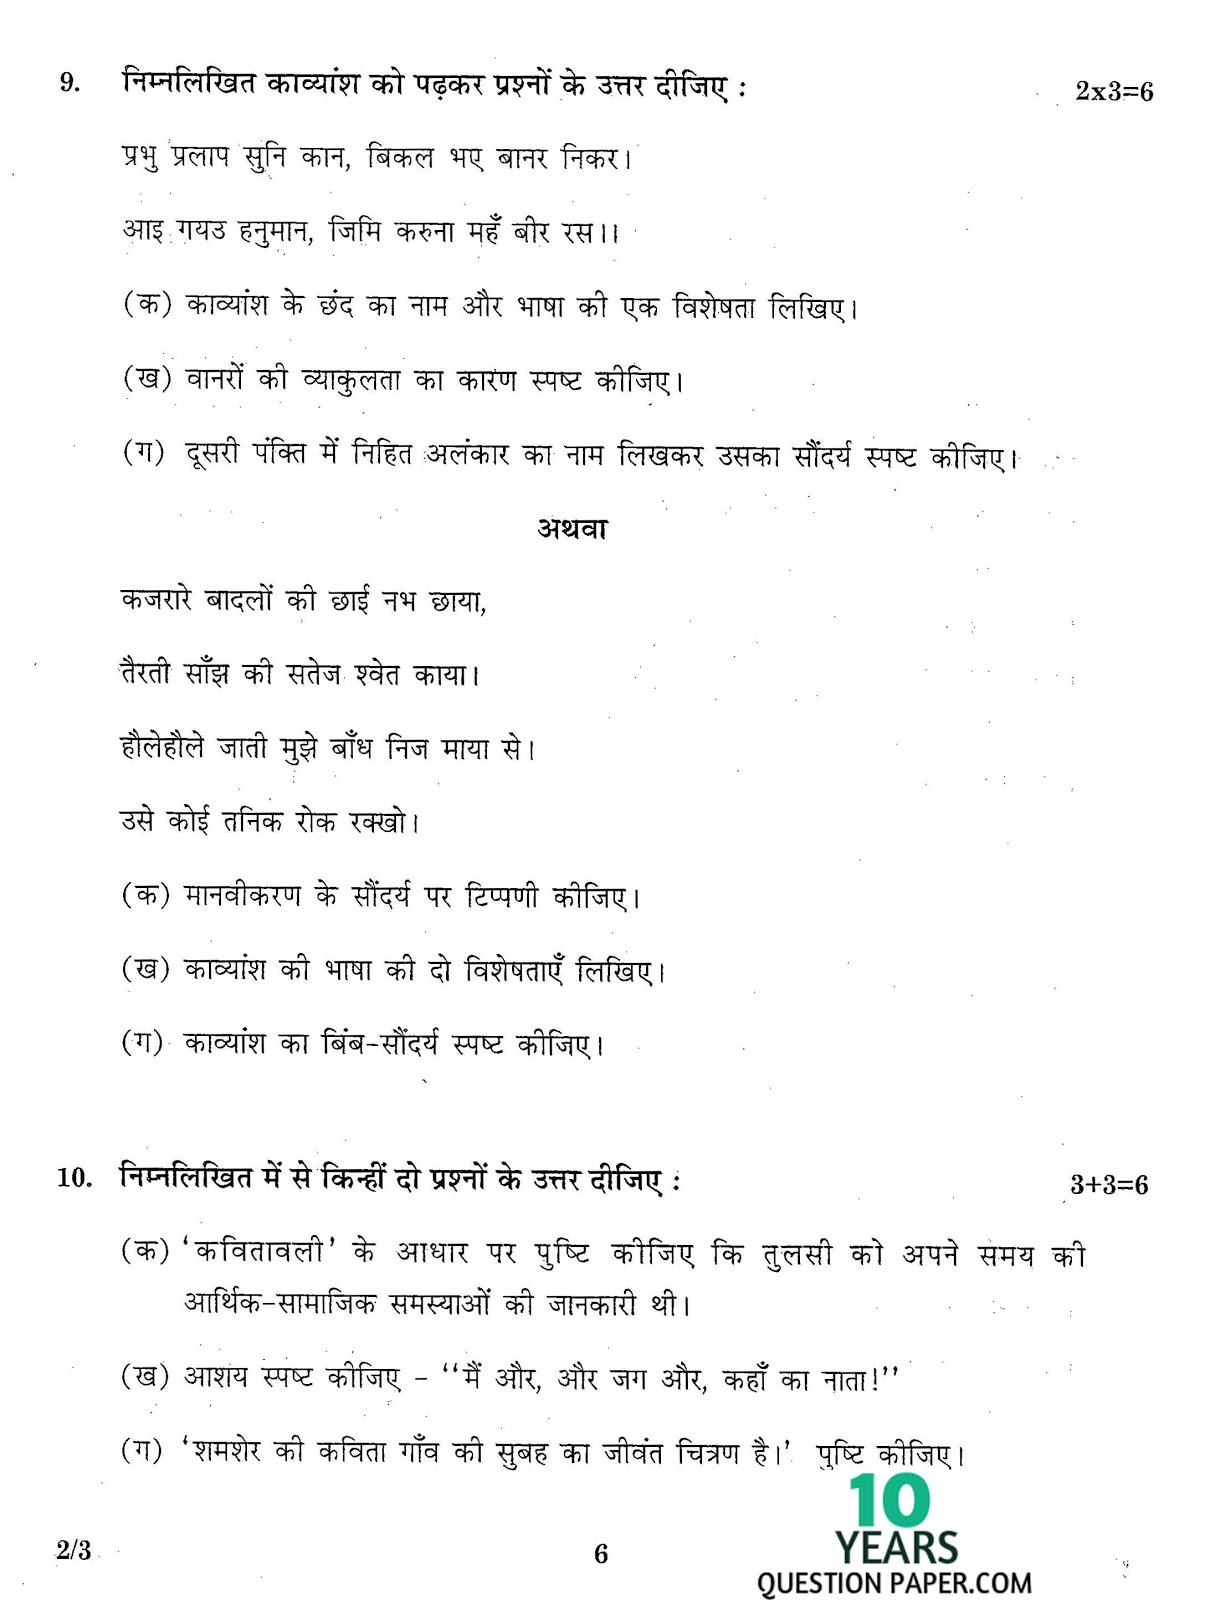 Worksheet Unseen Comprehension For Grade 3 hindi comprehension worksheets for grade 3 cbse noun math worksheet 2016 core class 12 board question paper set comprehension